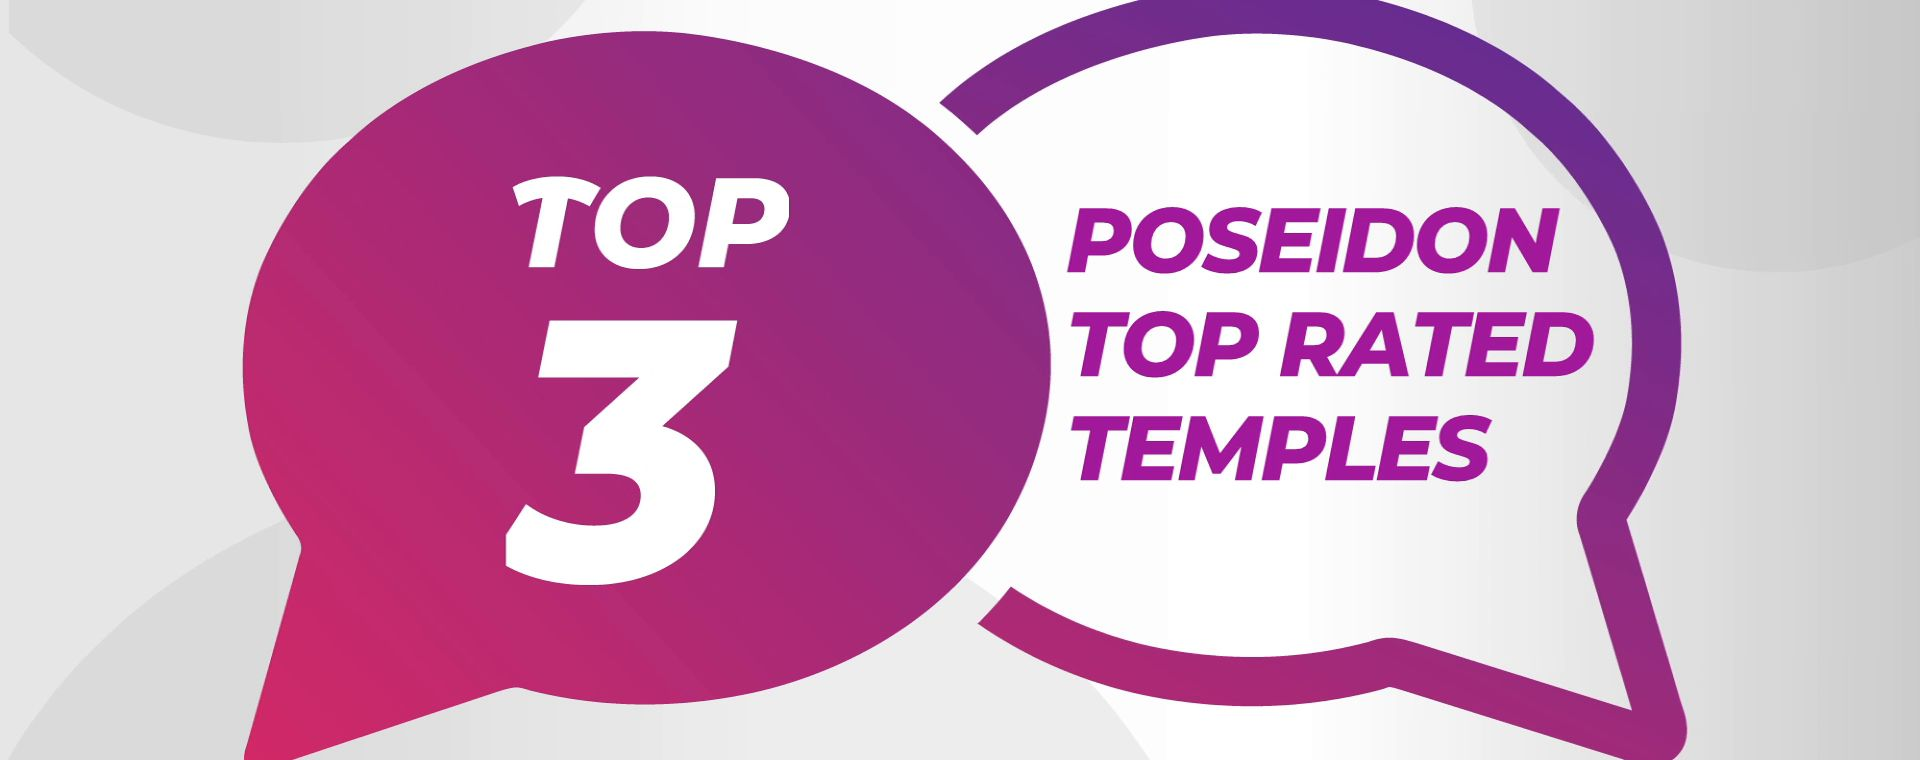 POSEIDON TOP RATED TEMPLES